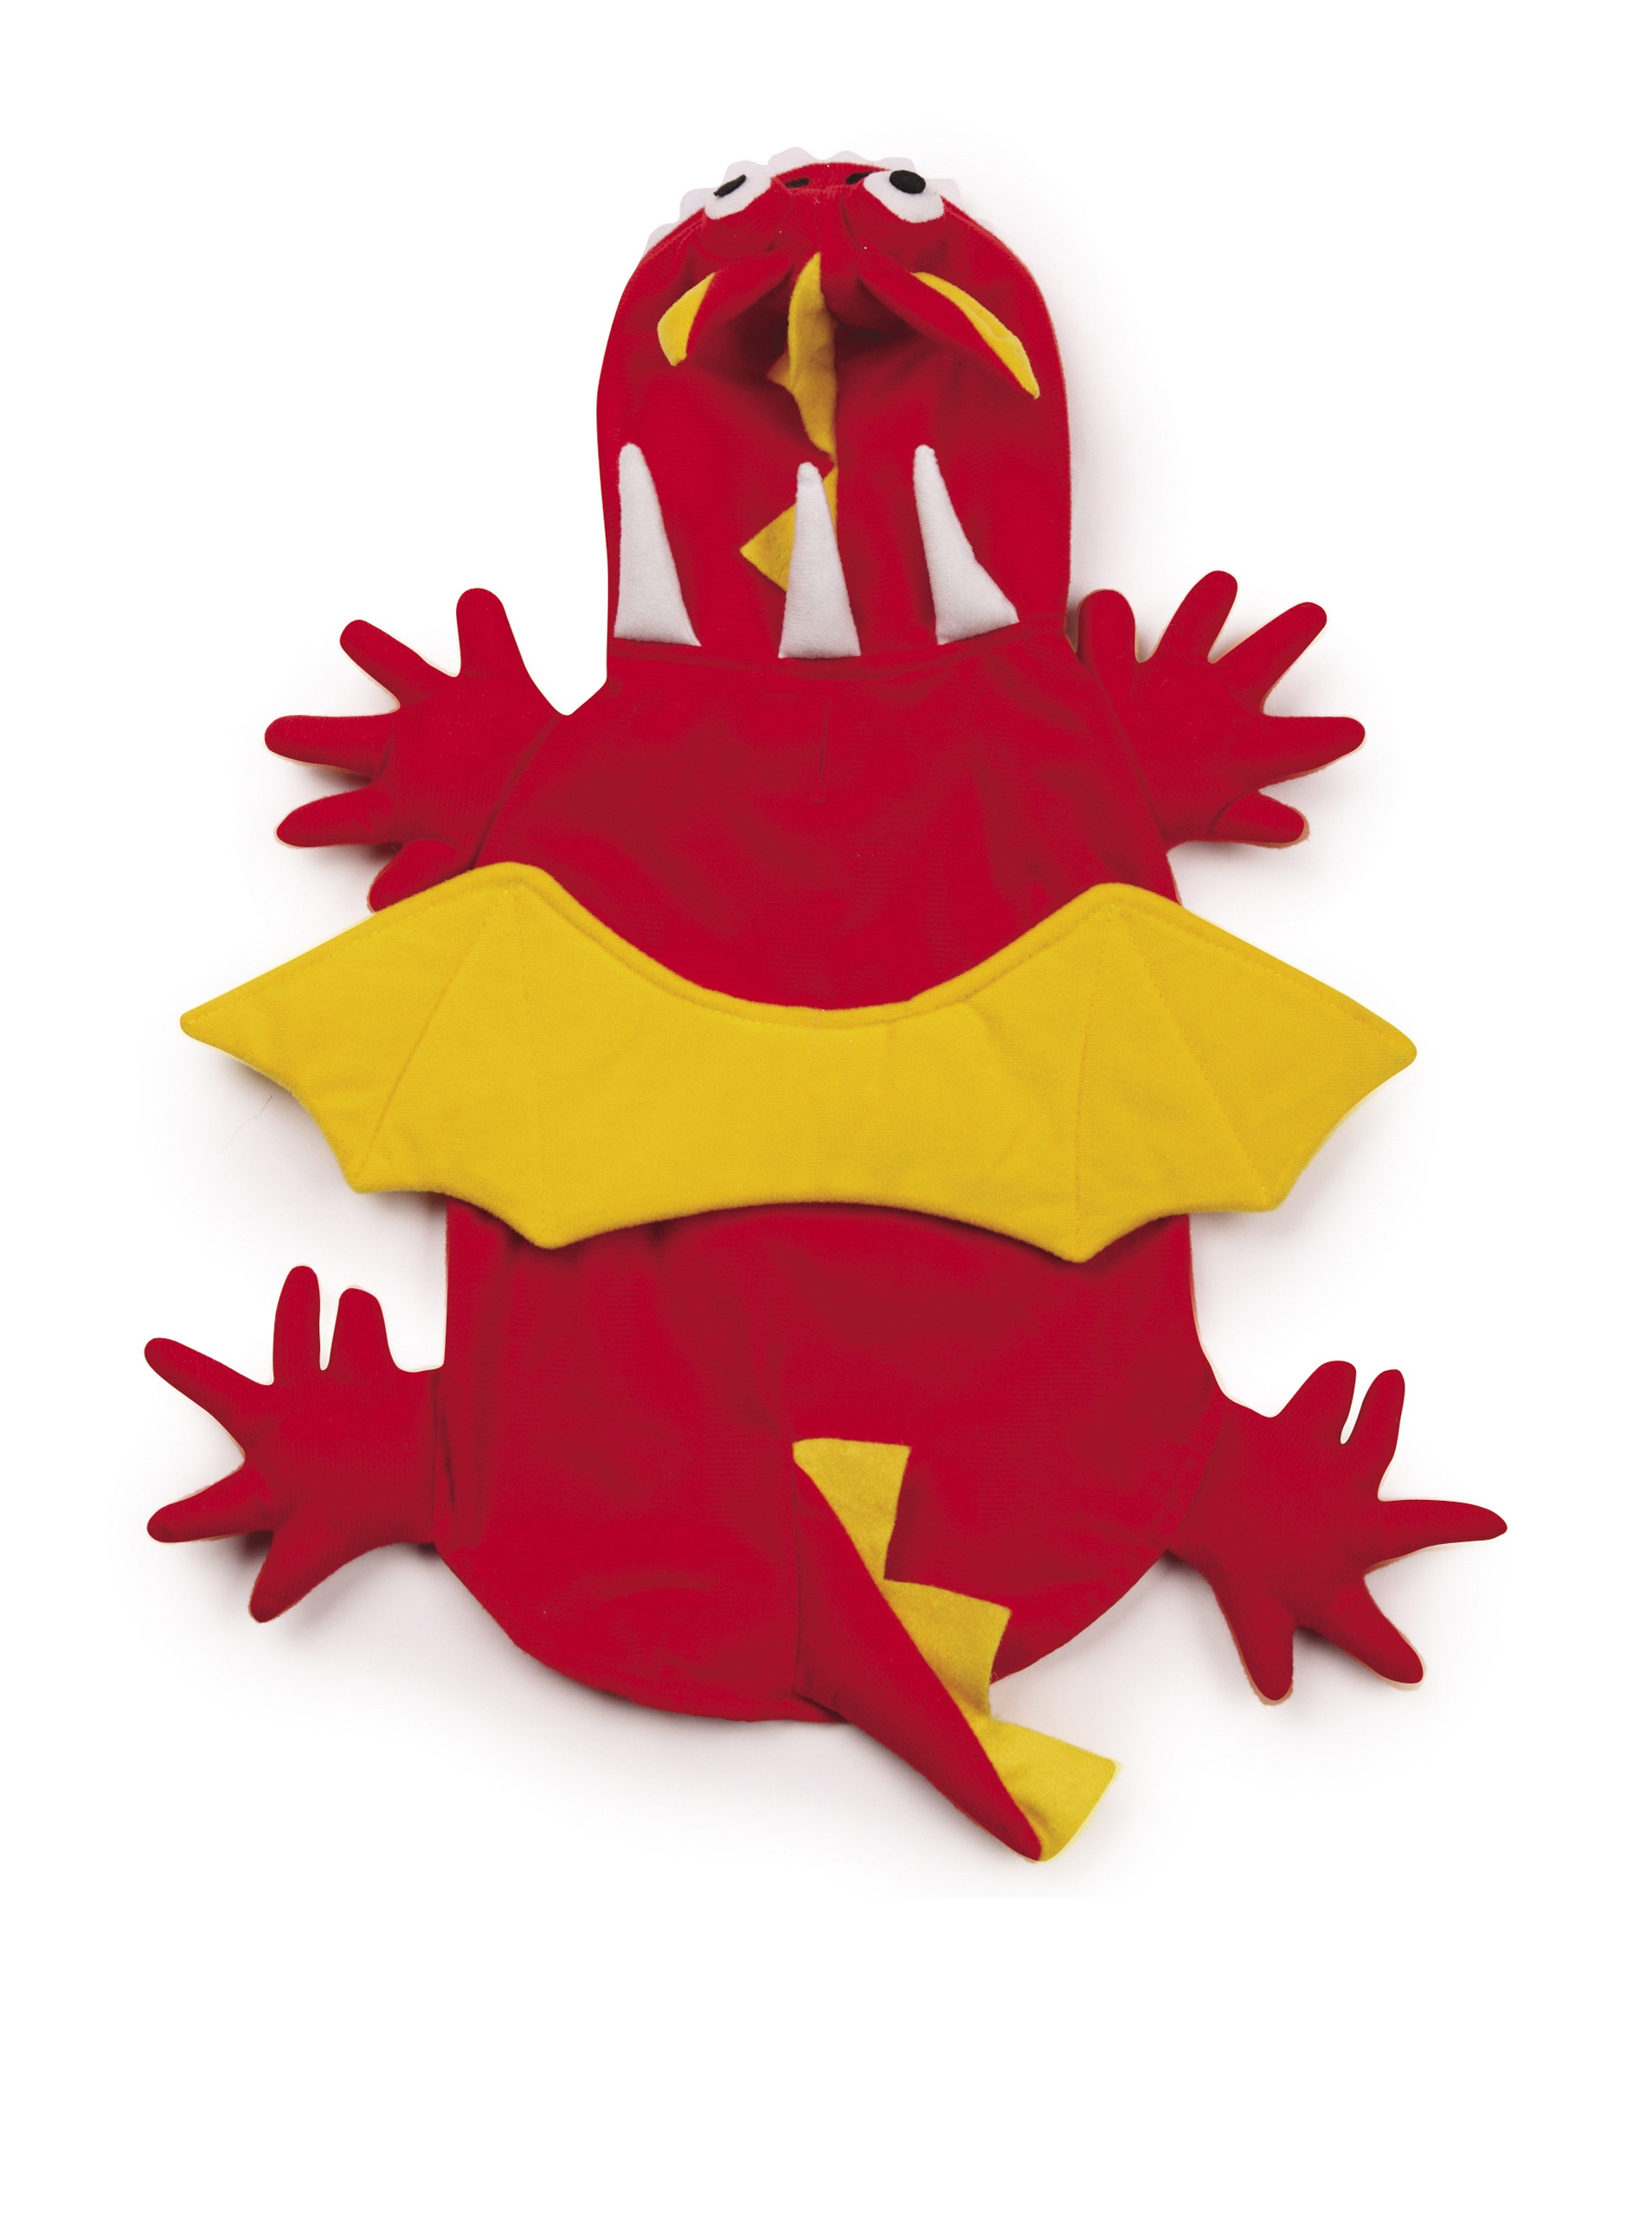 Zack & Zoey Dragon Dog Costume, Medium, Red by Zack & Zoey